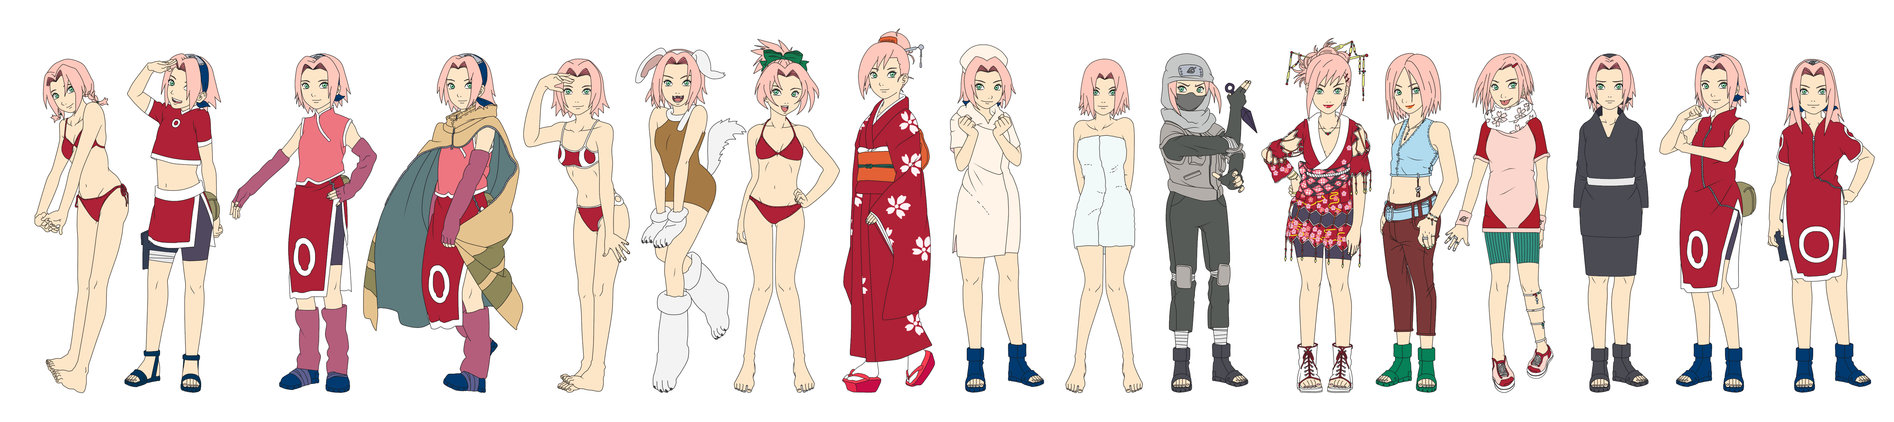 Sakura Haruno Outfit Color NARUTO by SunakiSabakuno on ...